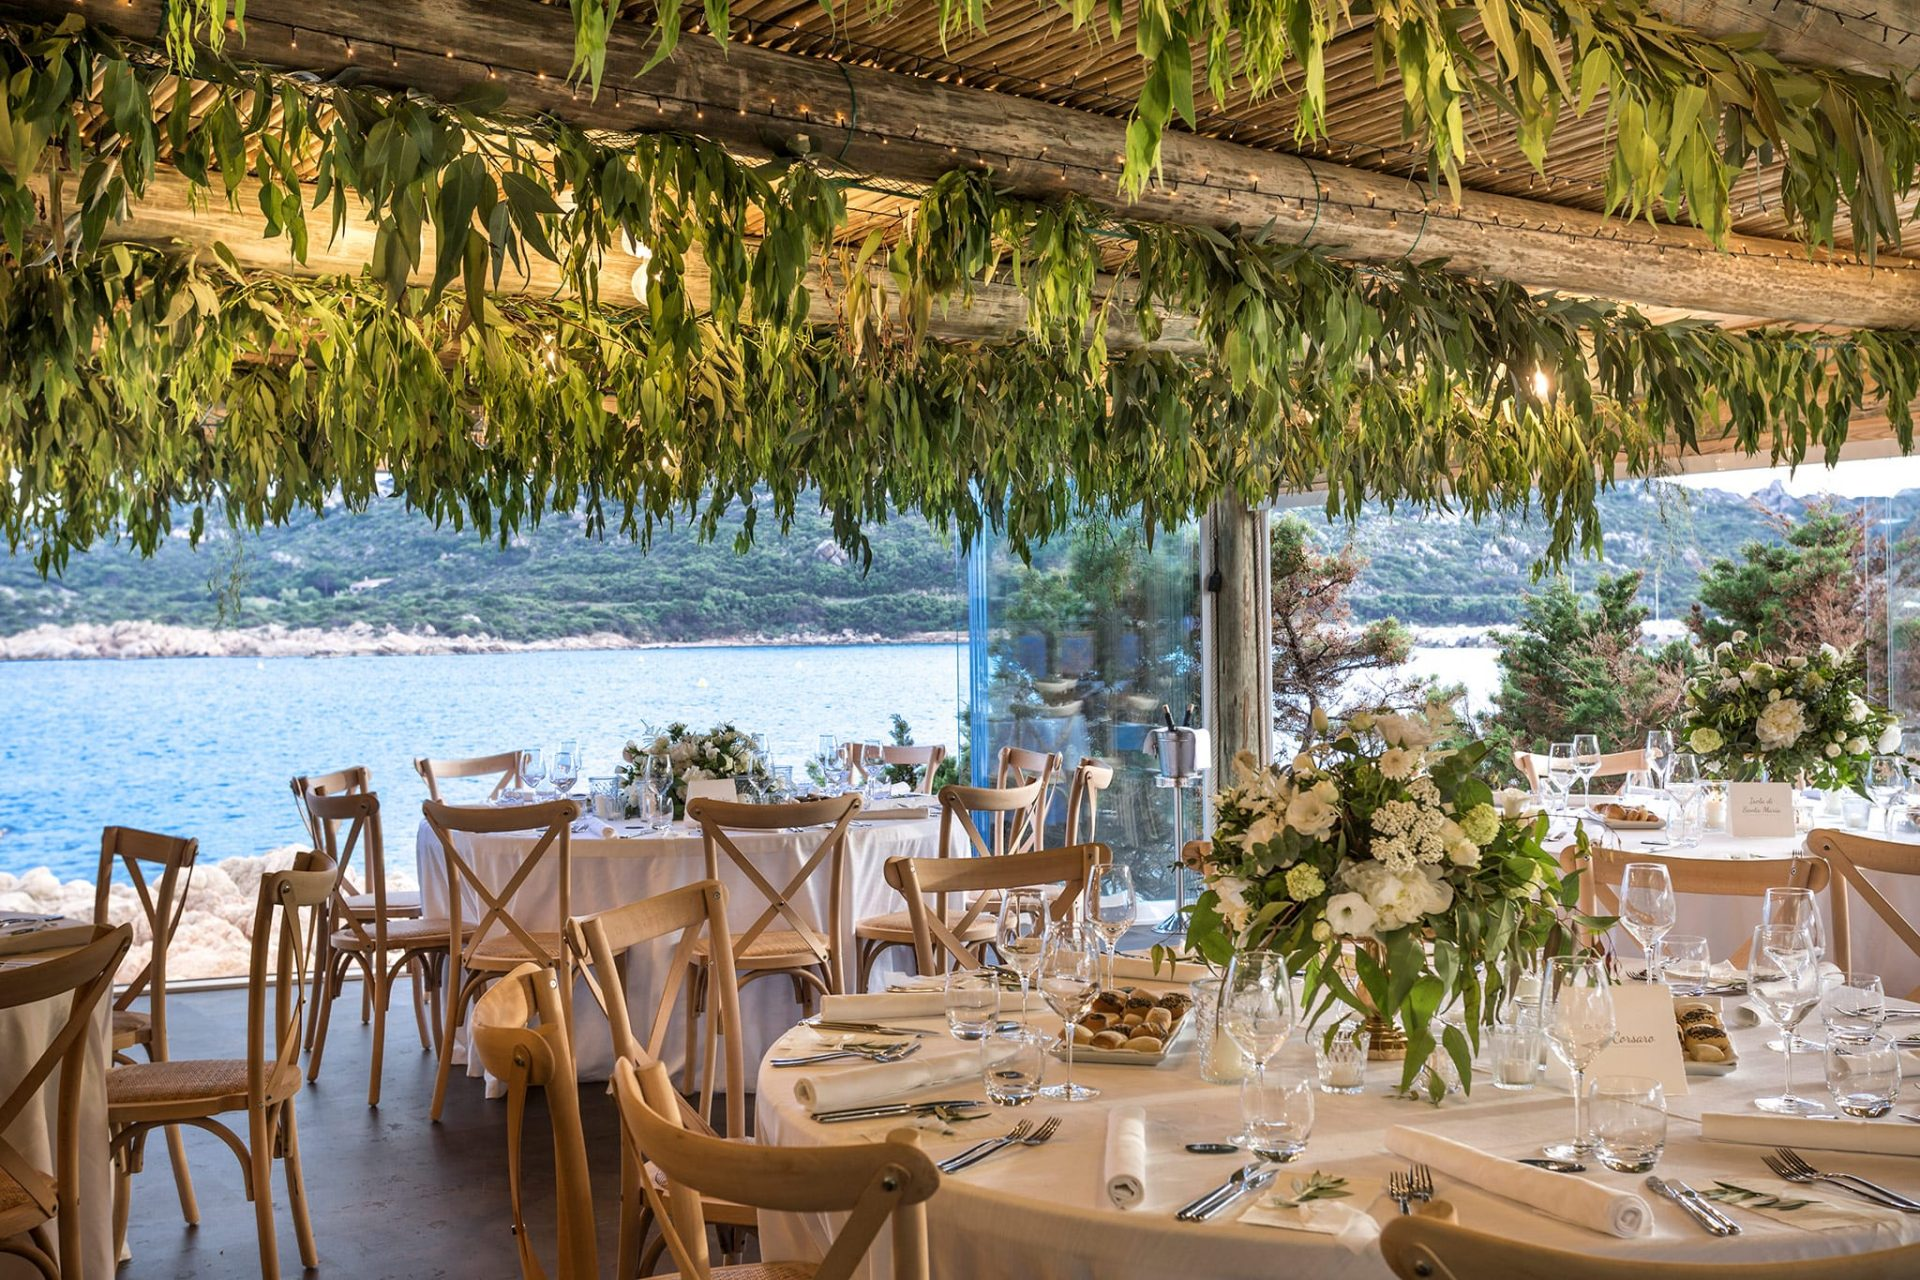 Agustina and Gianluca, restaurant with sea view